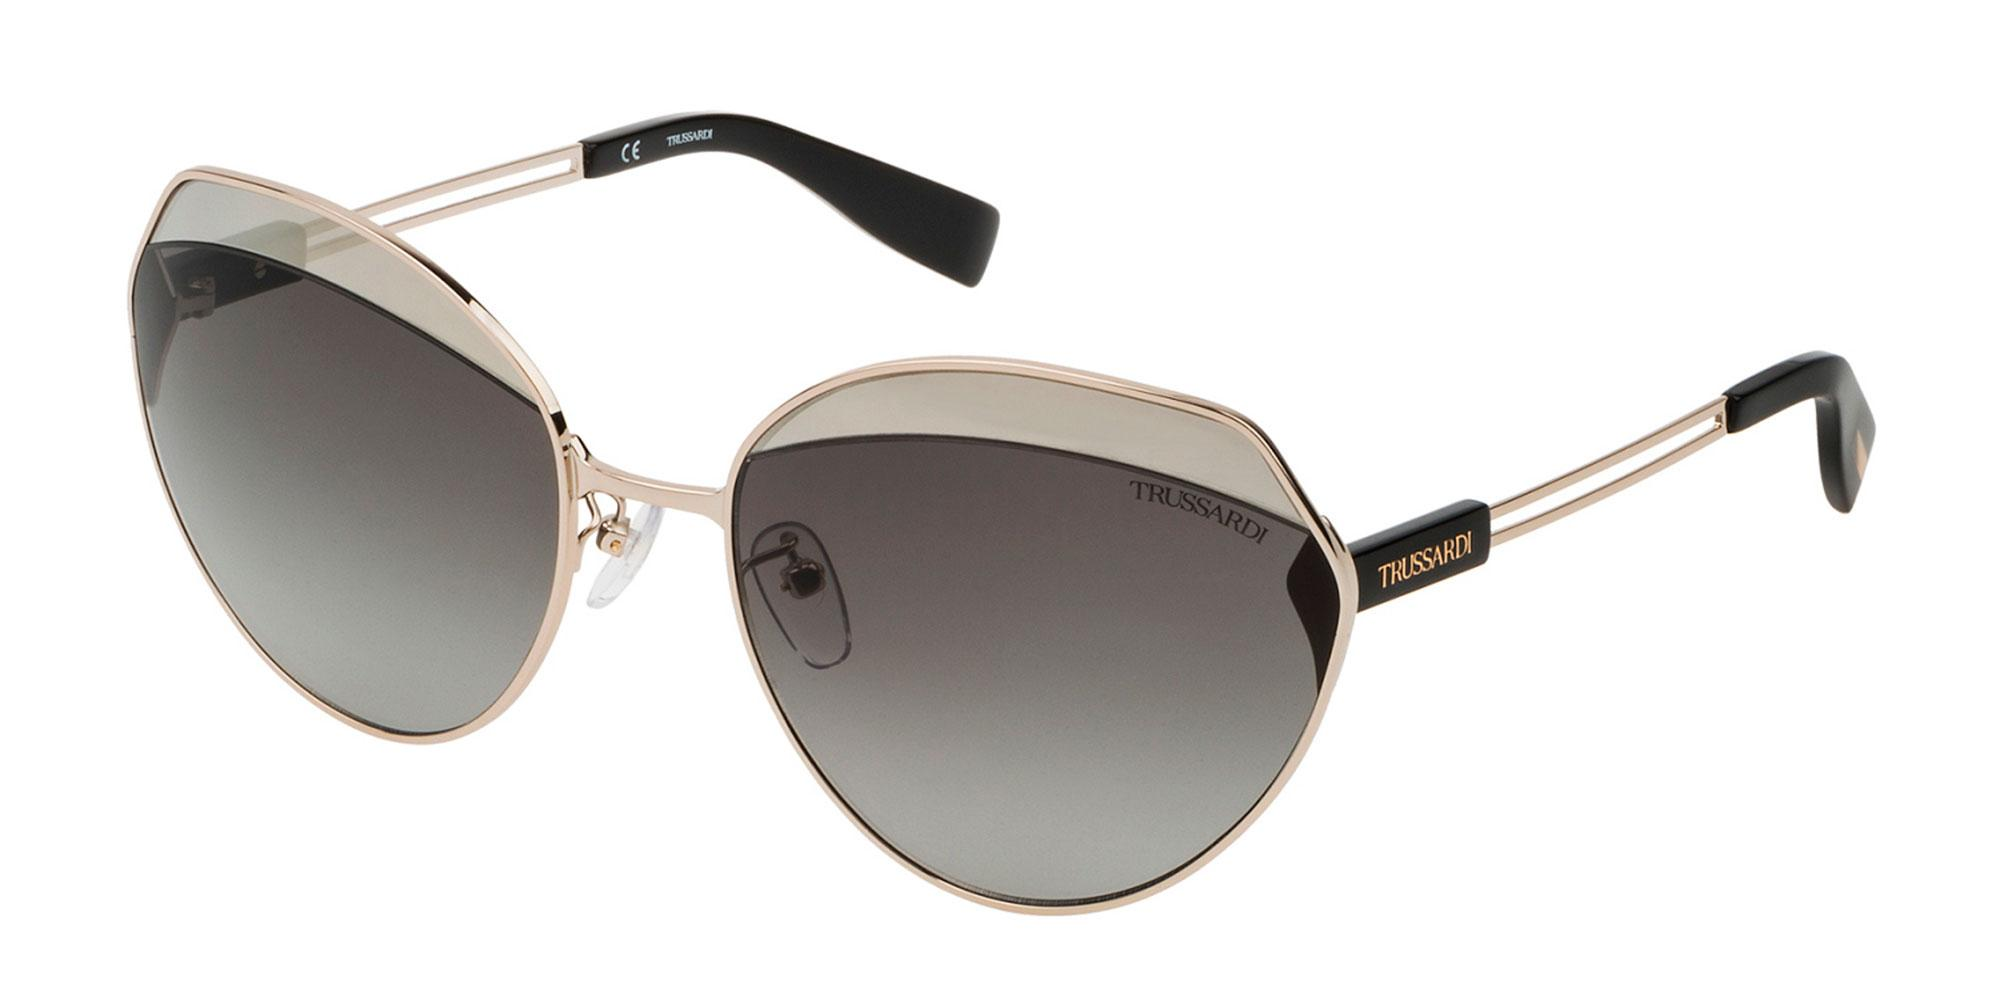 0594 STR298 Sunglasses, Trussardi